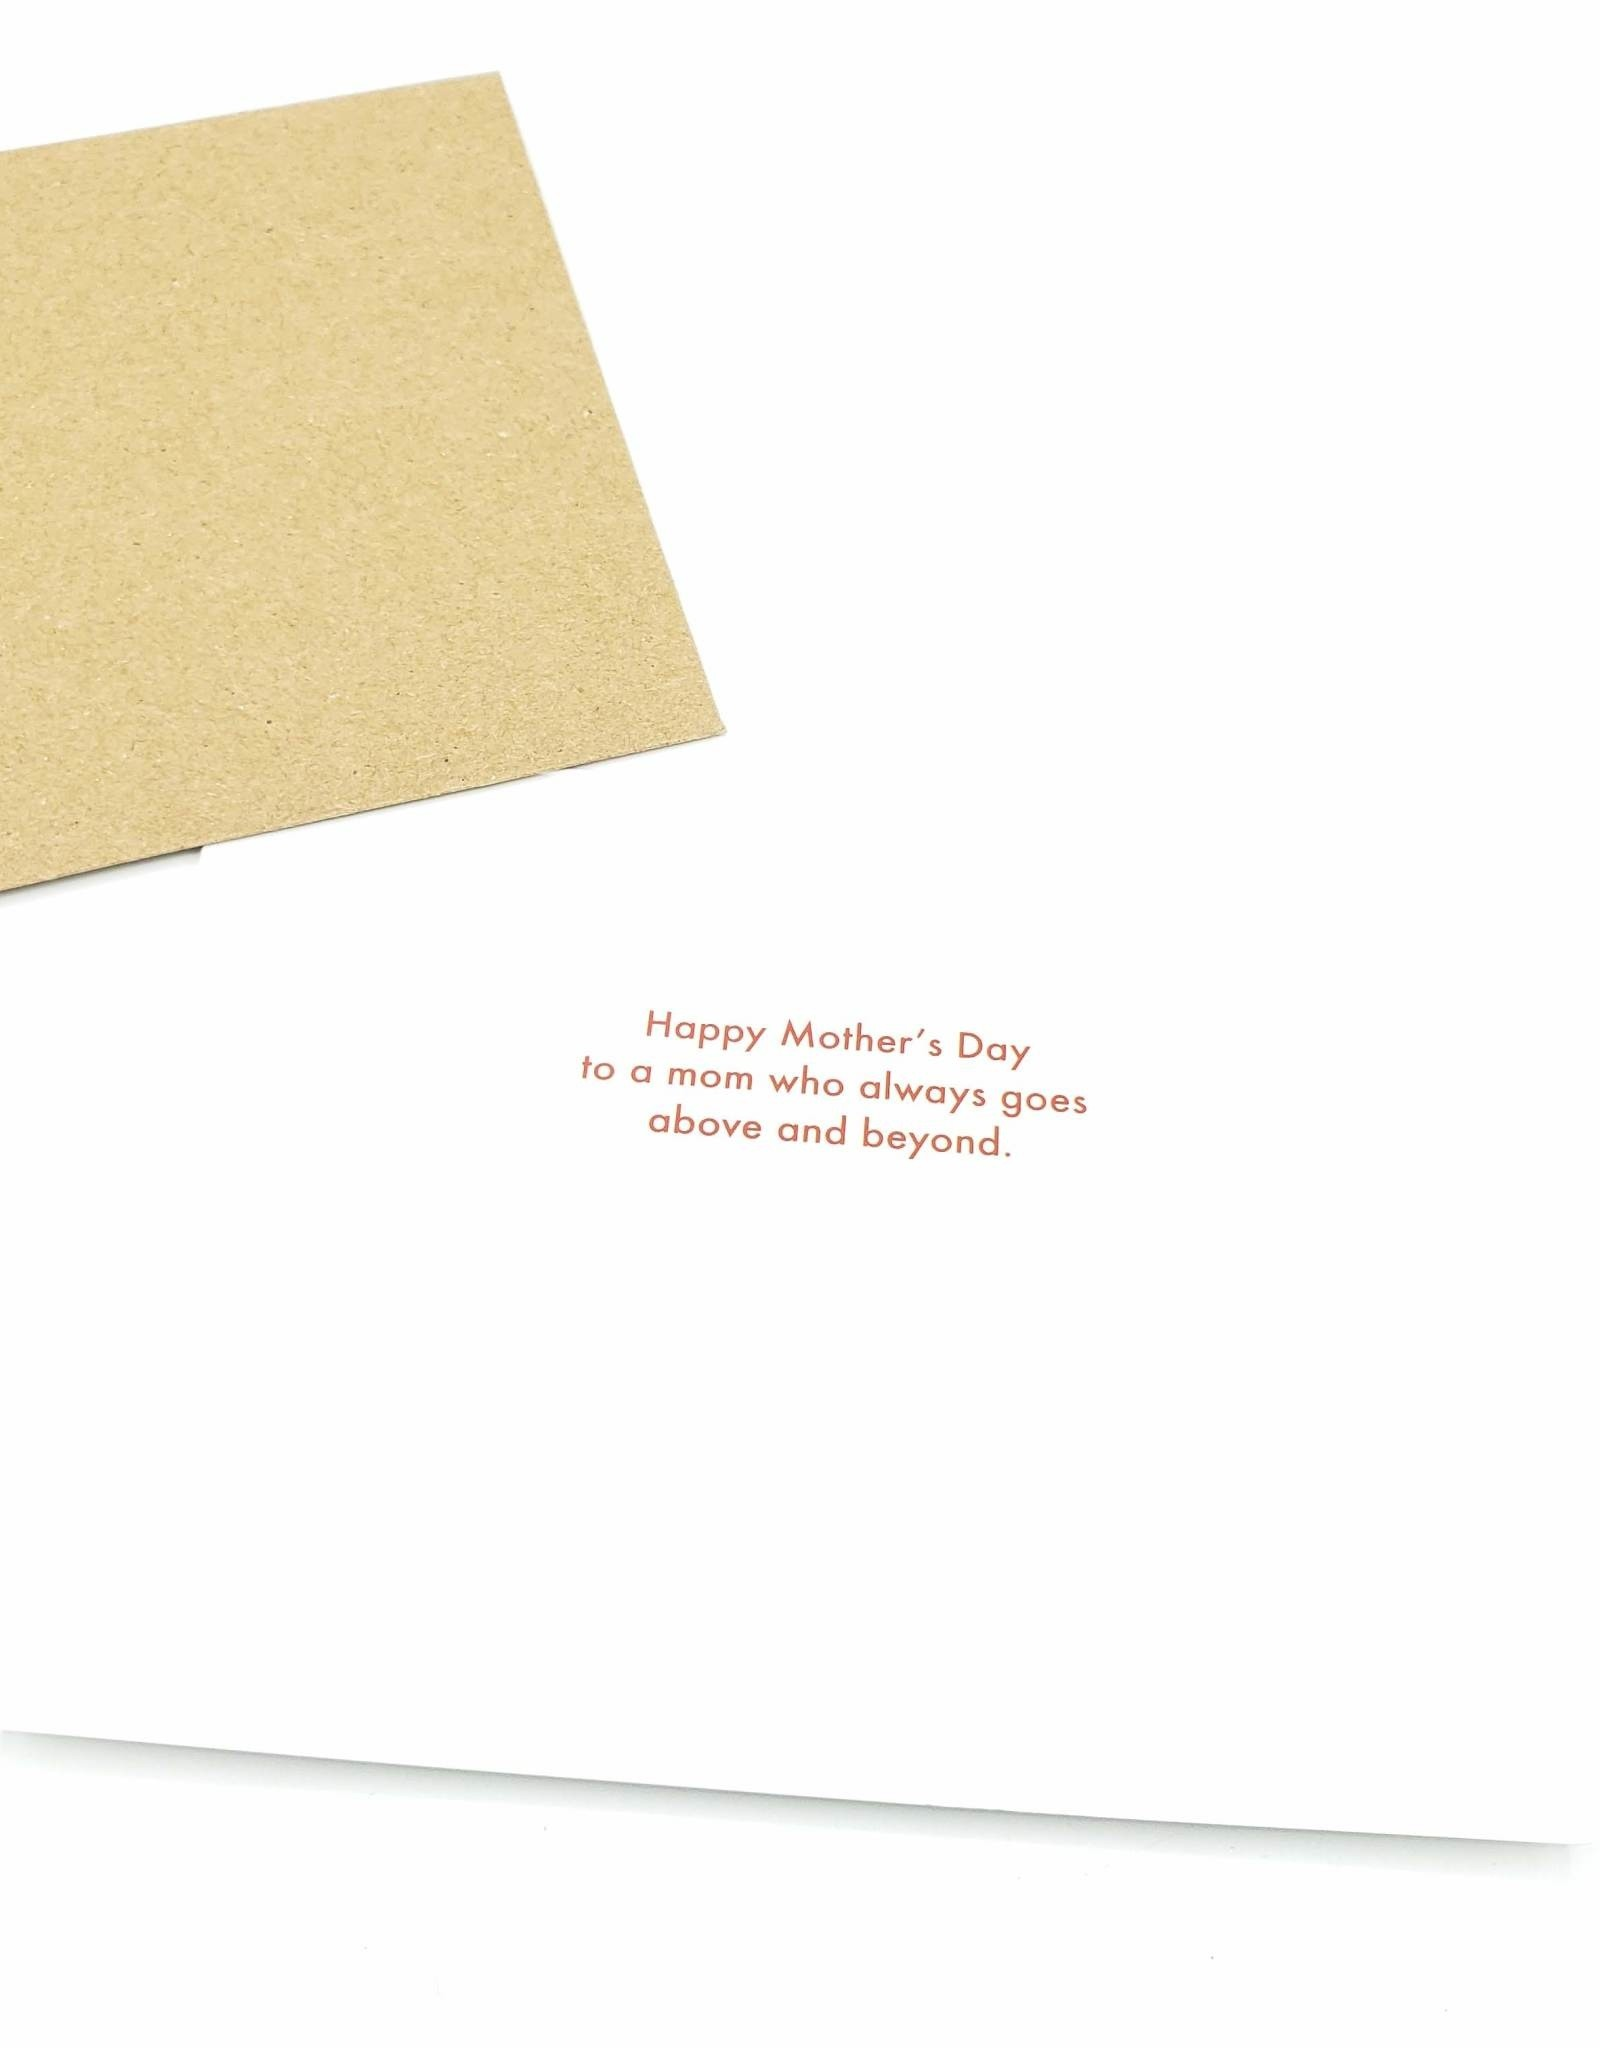 Mincing Mockingbird Above and Beyond Mother's Day Greeting Card - by Mincing Mockingbird